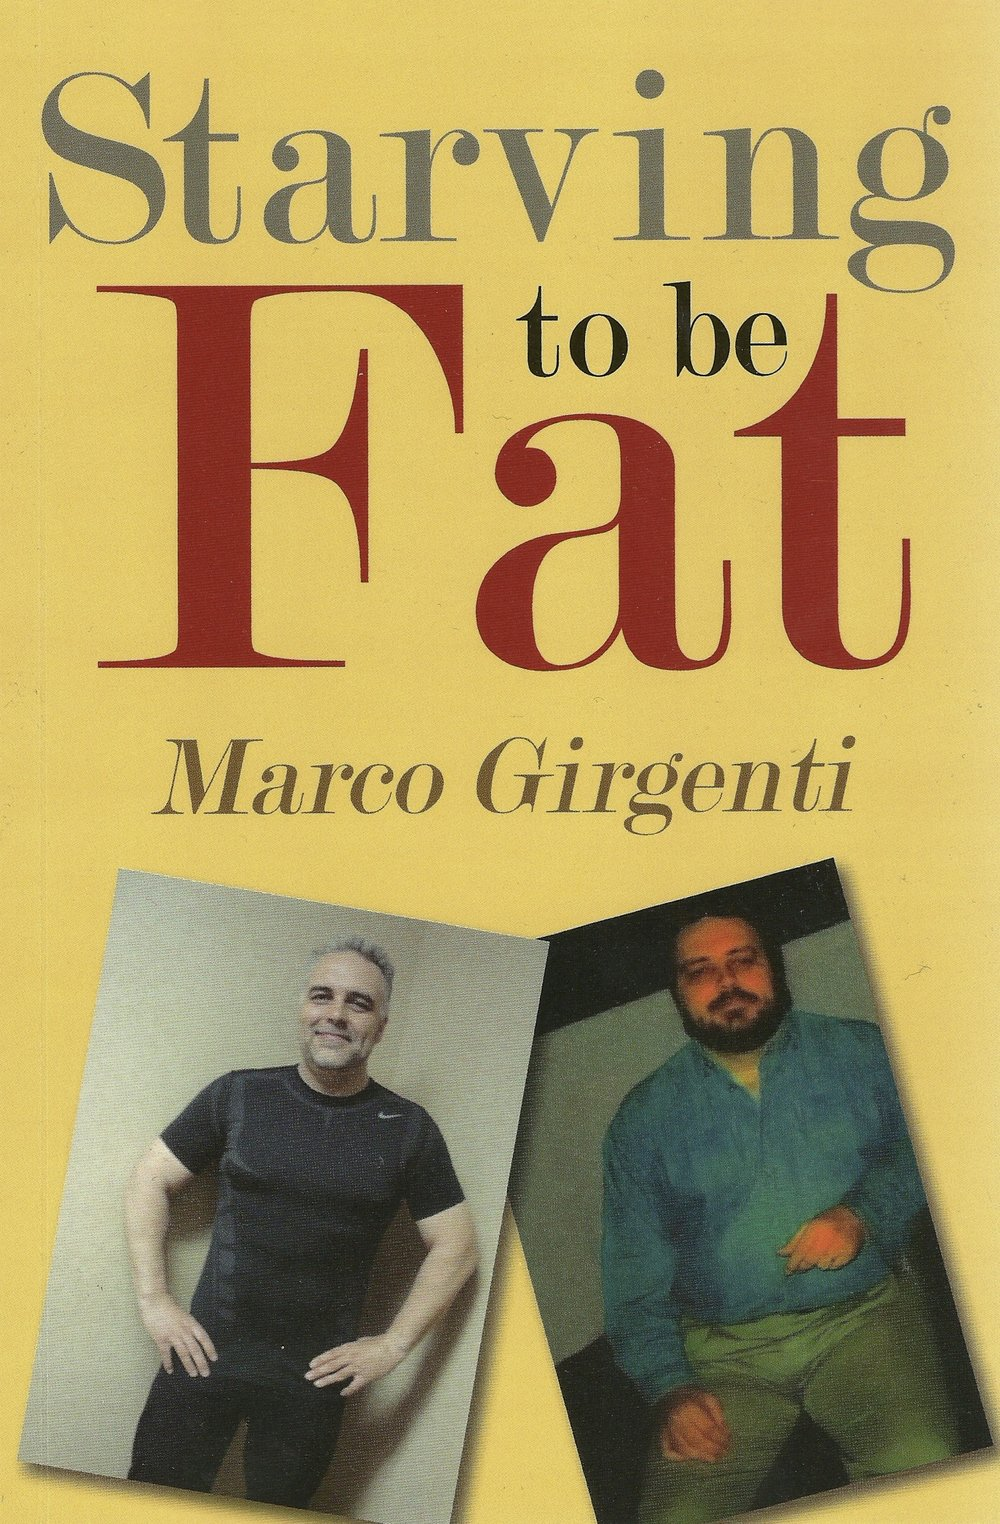 Starving to be fat Cover Image.jpg